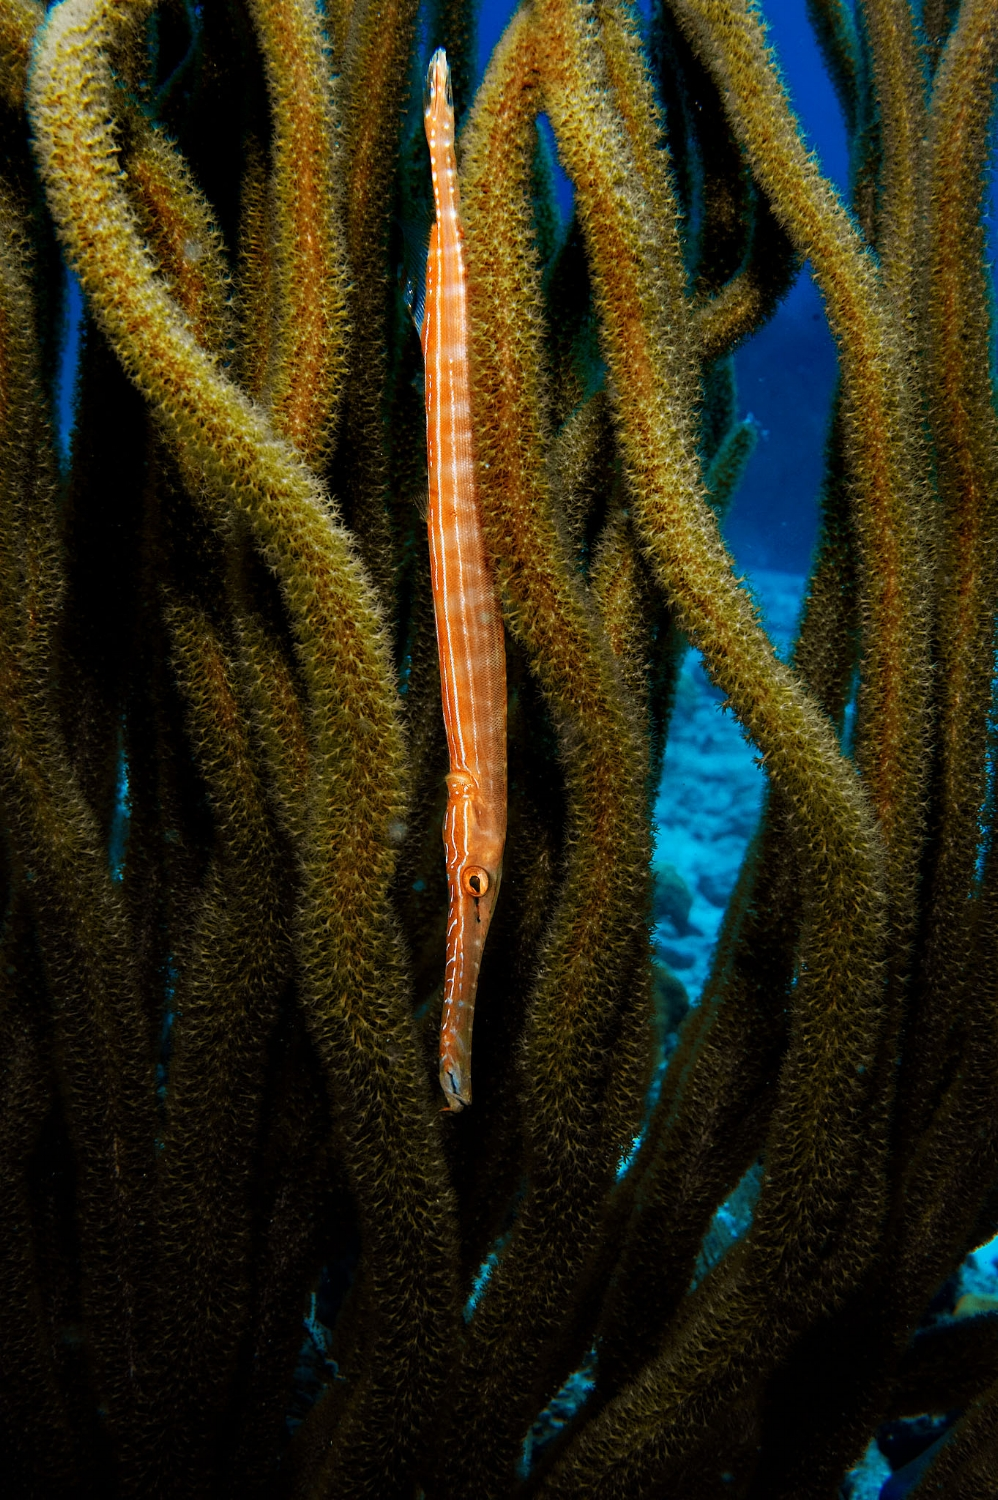 A Trumpet fish (Aulostomus maculatus) swims vertically among a gorgonian at 'Bachelor Beach' dive site in Bonaire, Netherlands Antilles on Monday, June 8, 2009. Trumpet fish are usually seen swimming vertically to hide among corals and marine plants. They are ambush predators that feed on smaller fish and shrimps.